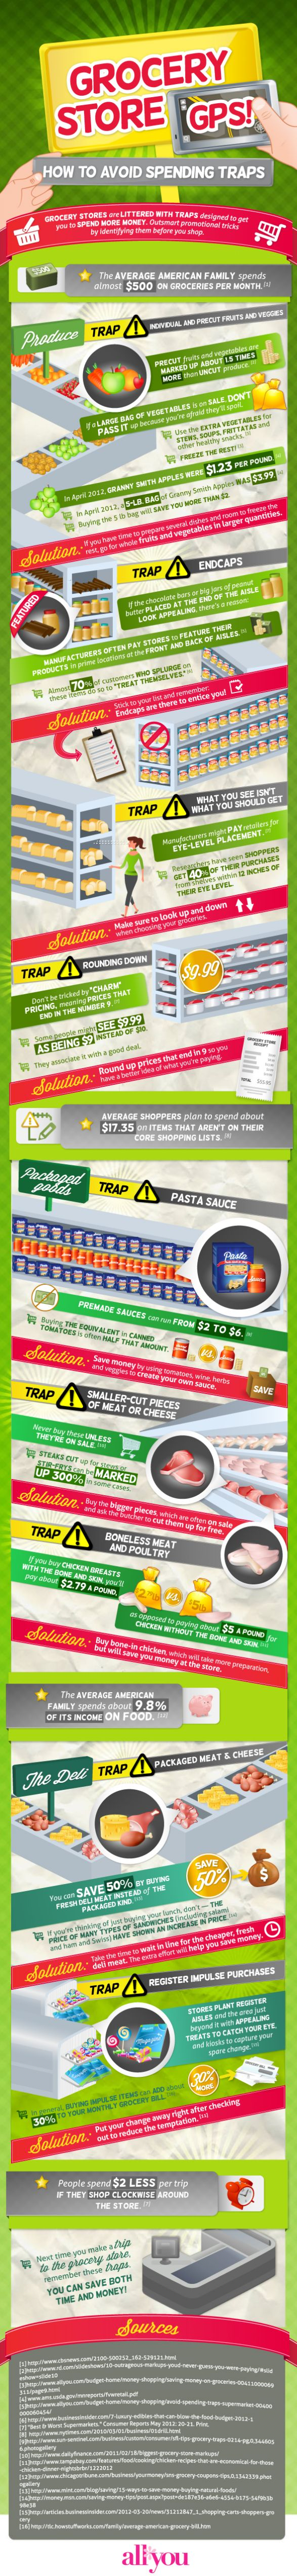 How To Save Money On Groceries: Avoid Spending, Grocery Store, Saving Money, How To Save Money, Spending Traps, Money Saving, Tips, Infographic, Coupon